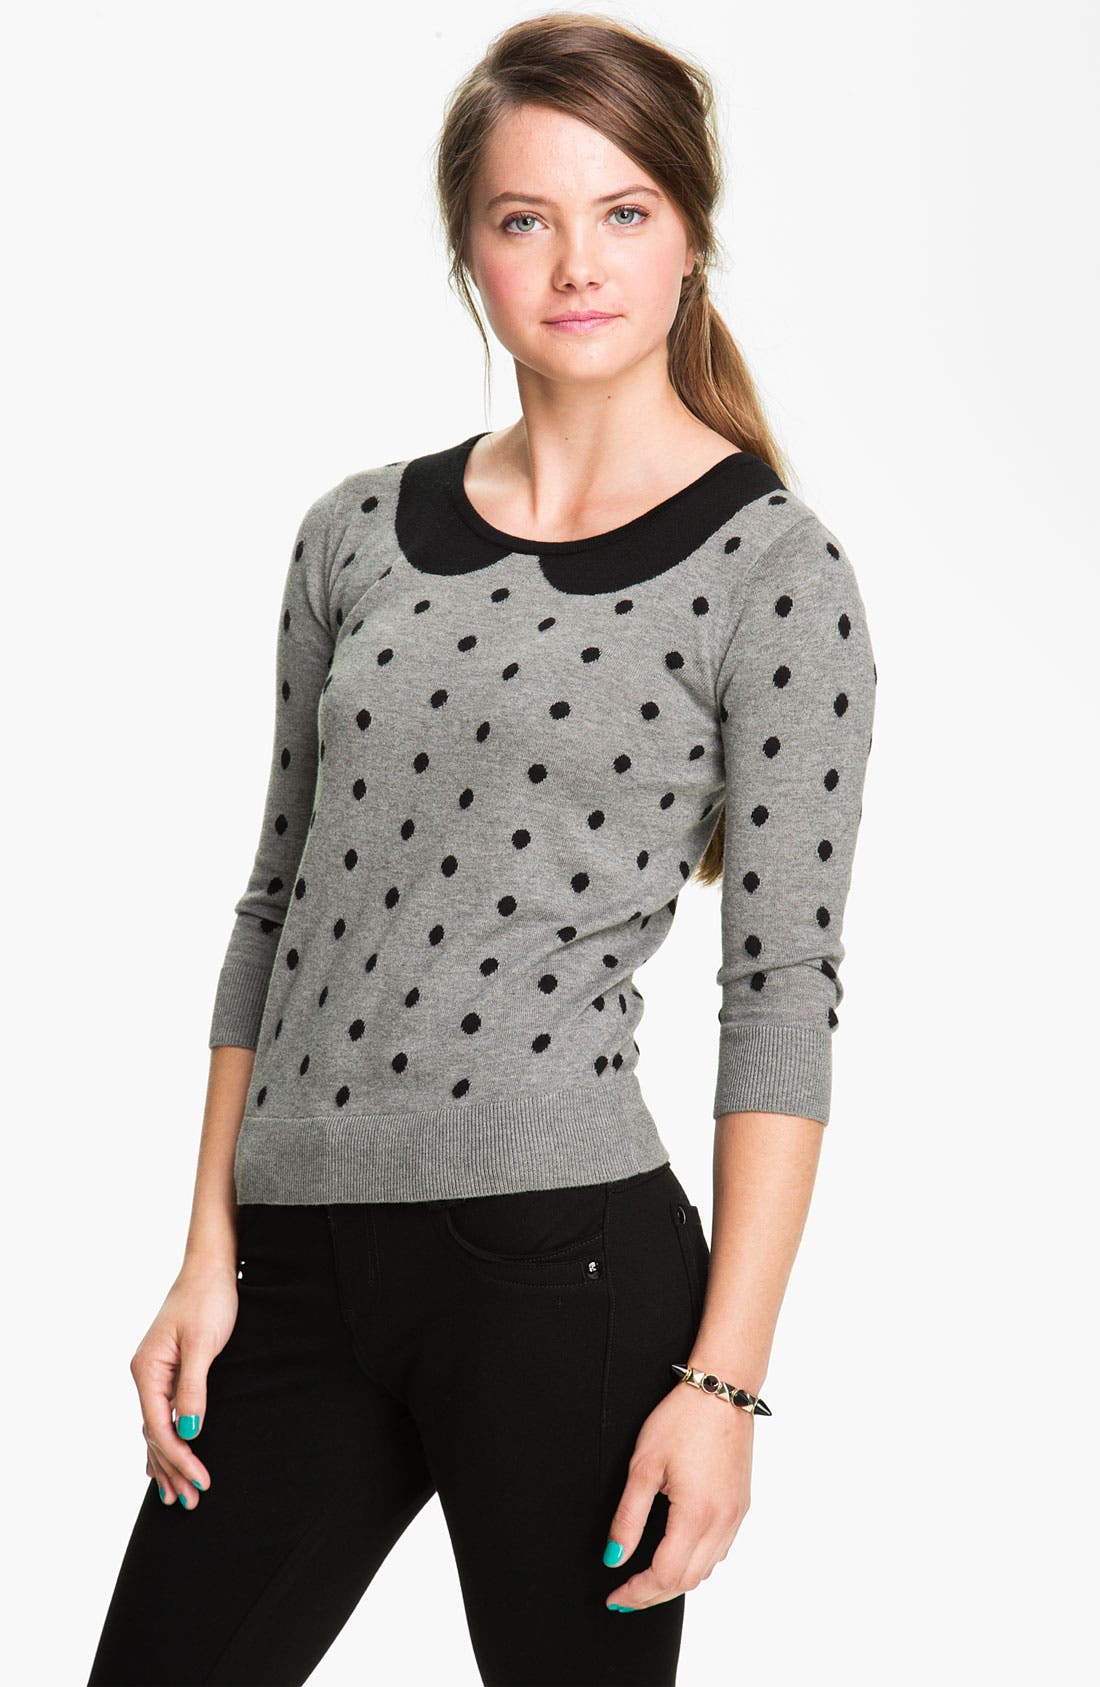 Alternate Image 1 Selected - Frenchi® Polka Dot Peter Pan Sweater (Juniors)